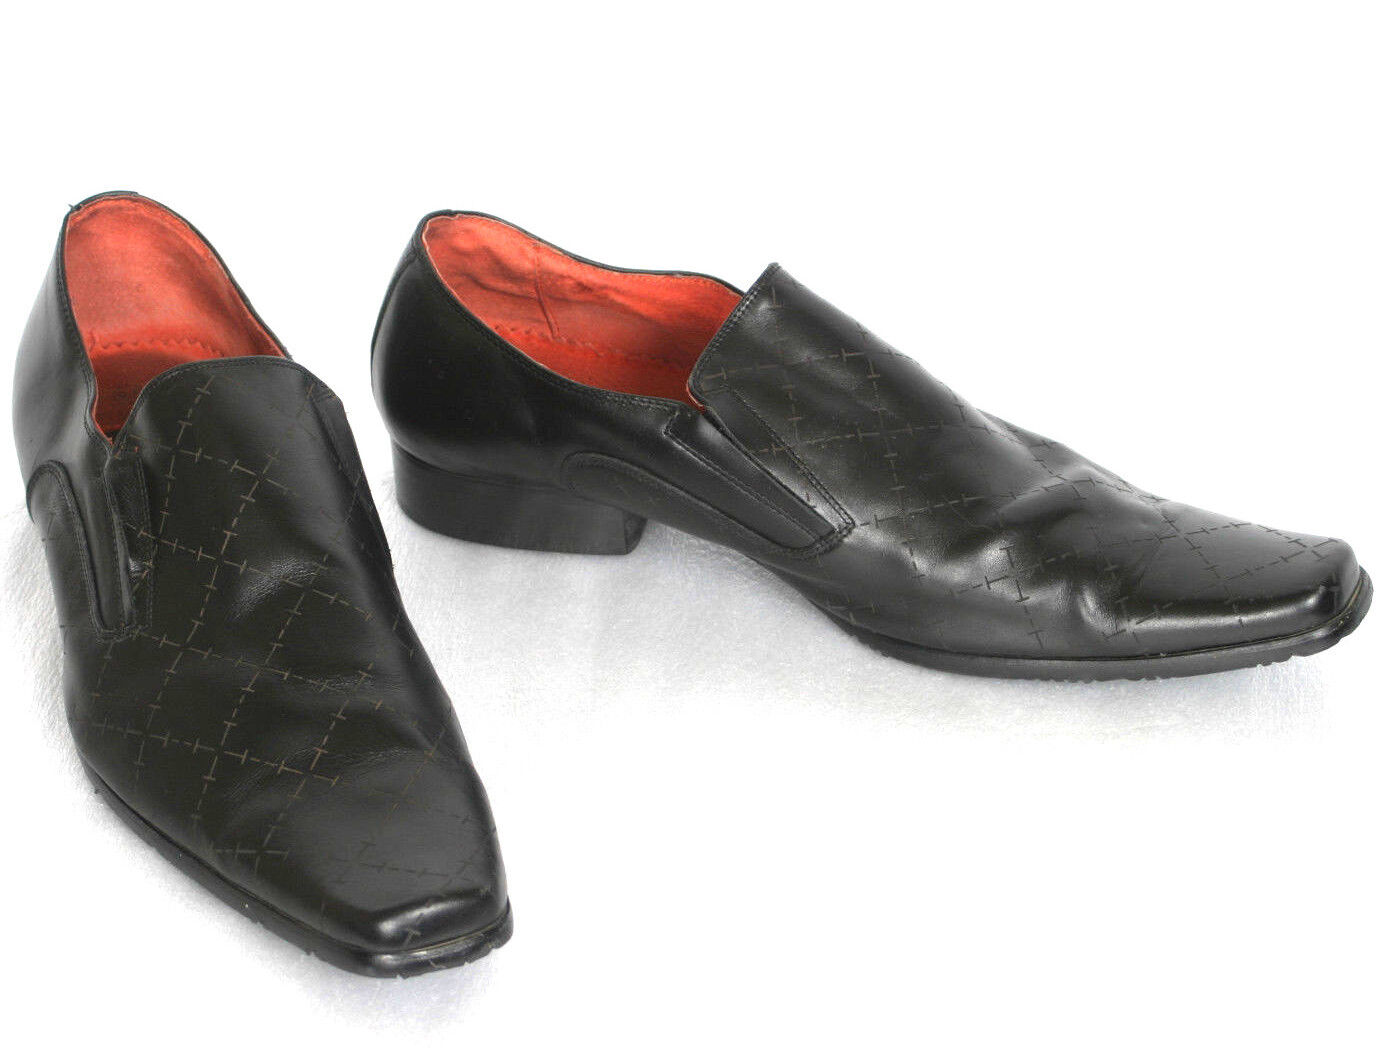 Tansmith Mens Black Dress shoes 9.5 no width shown 37820-01 Compare with new  89